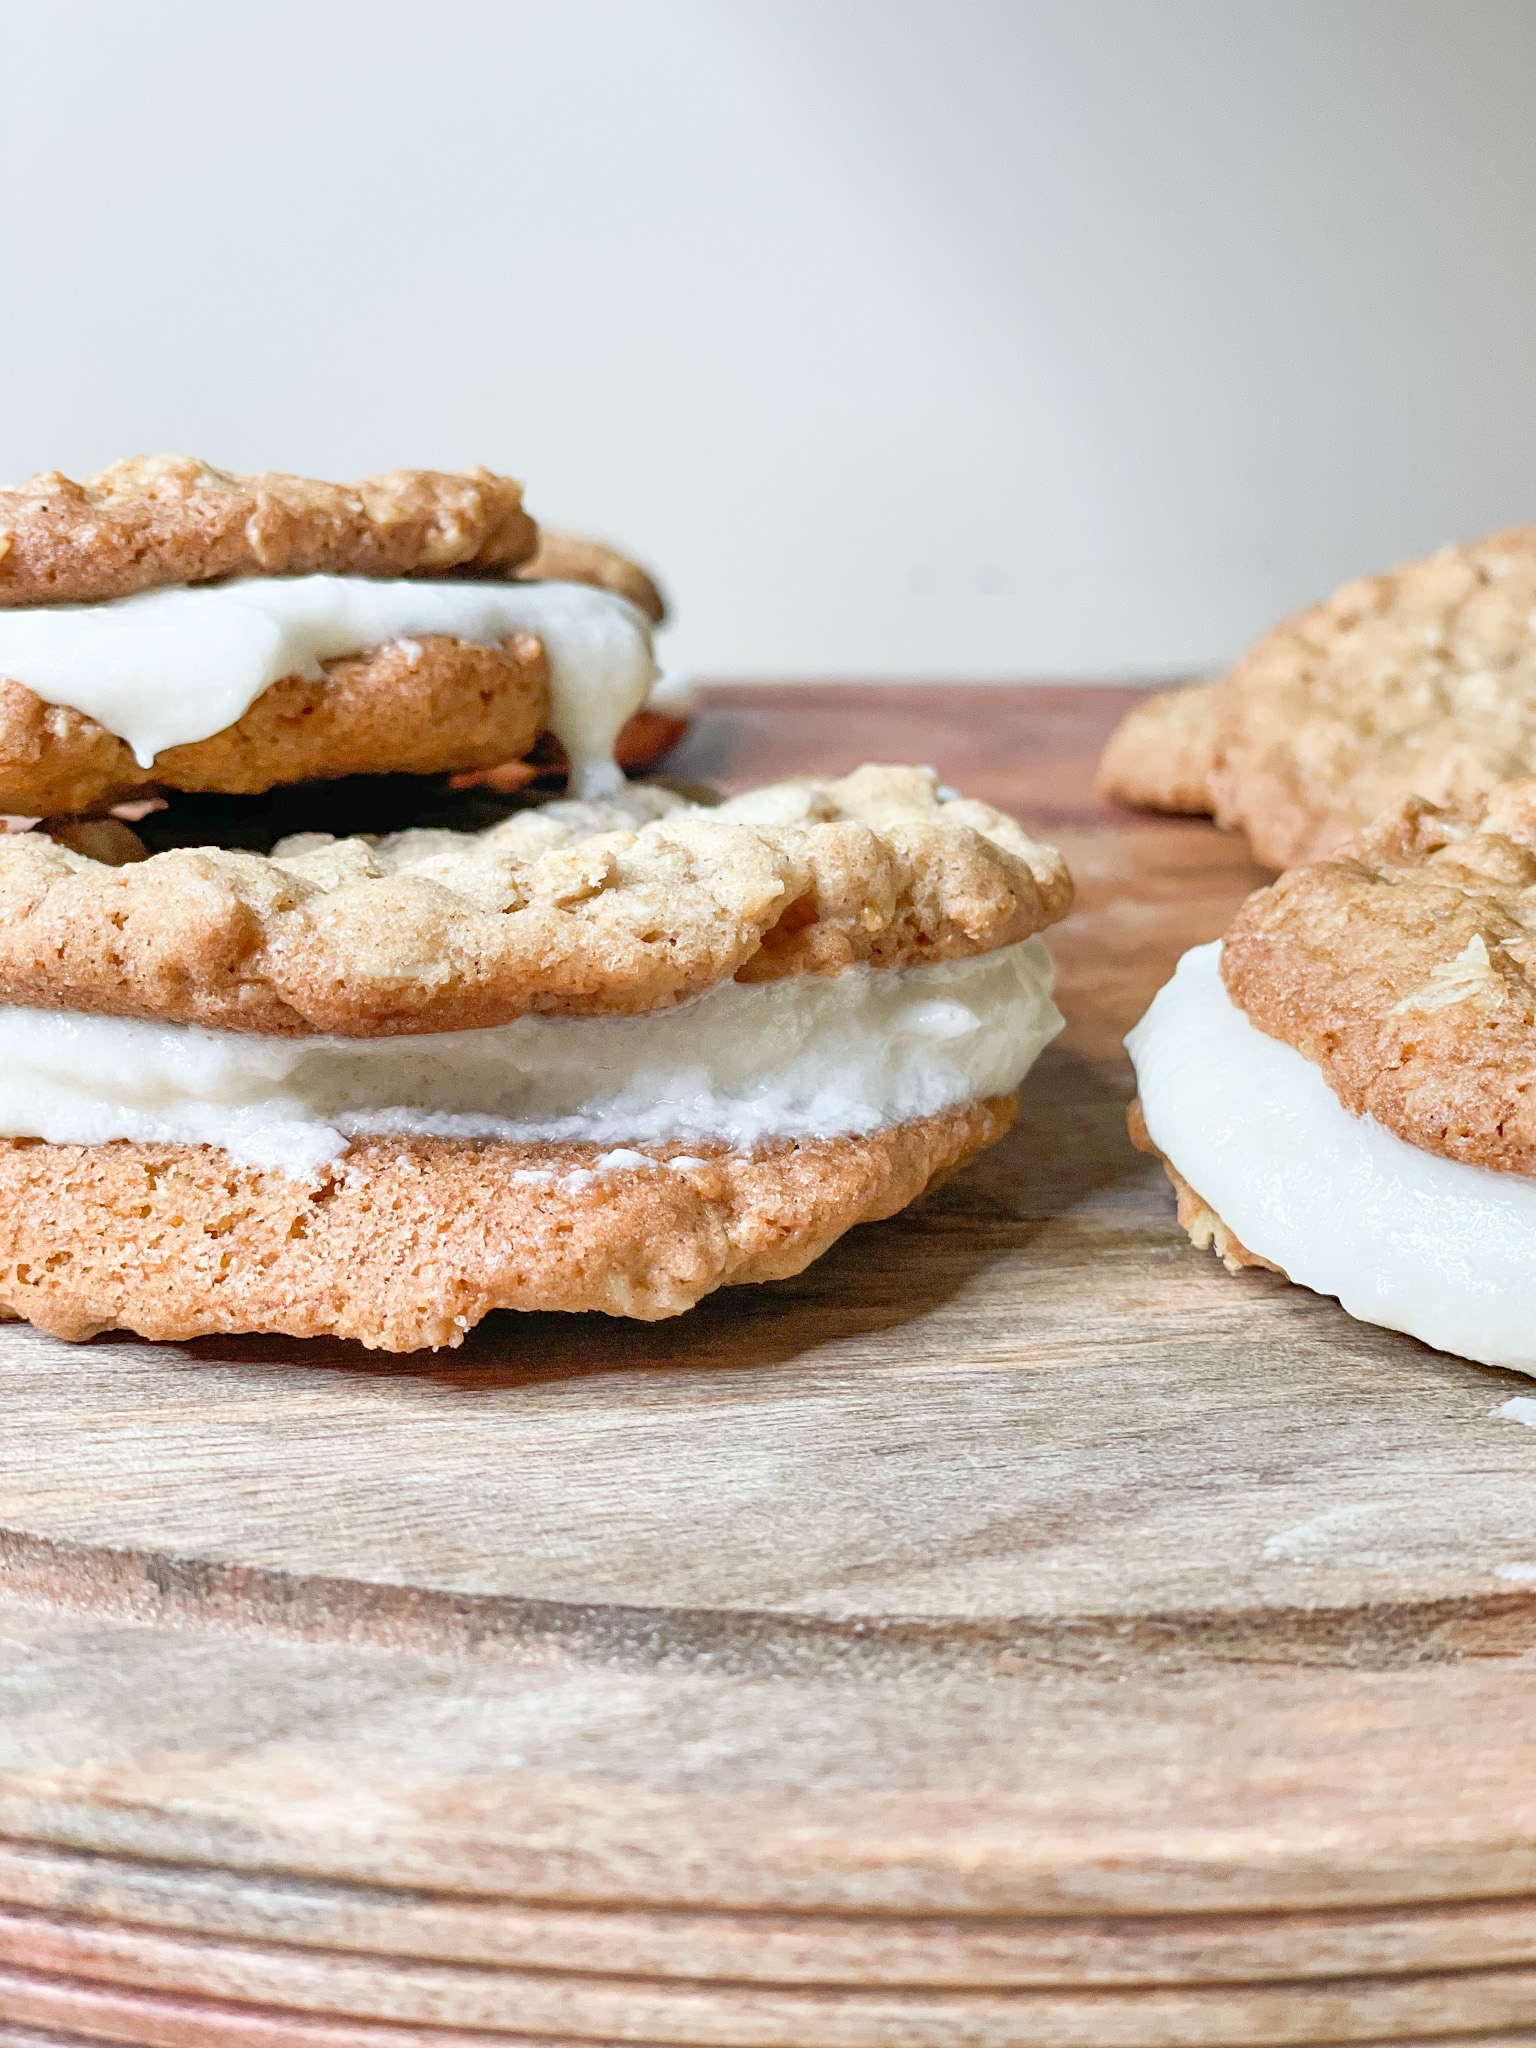 oatmeal creme pies on a wooden stand